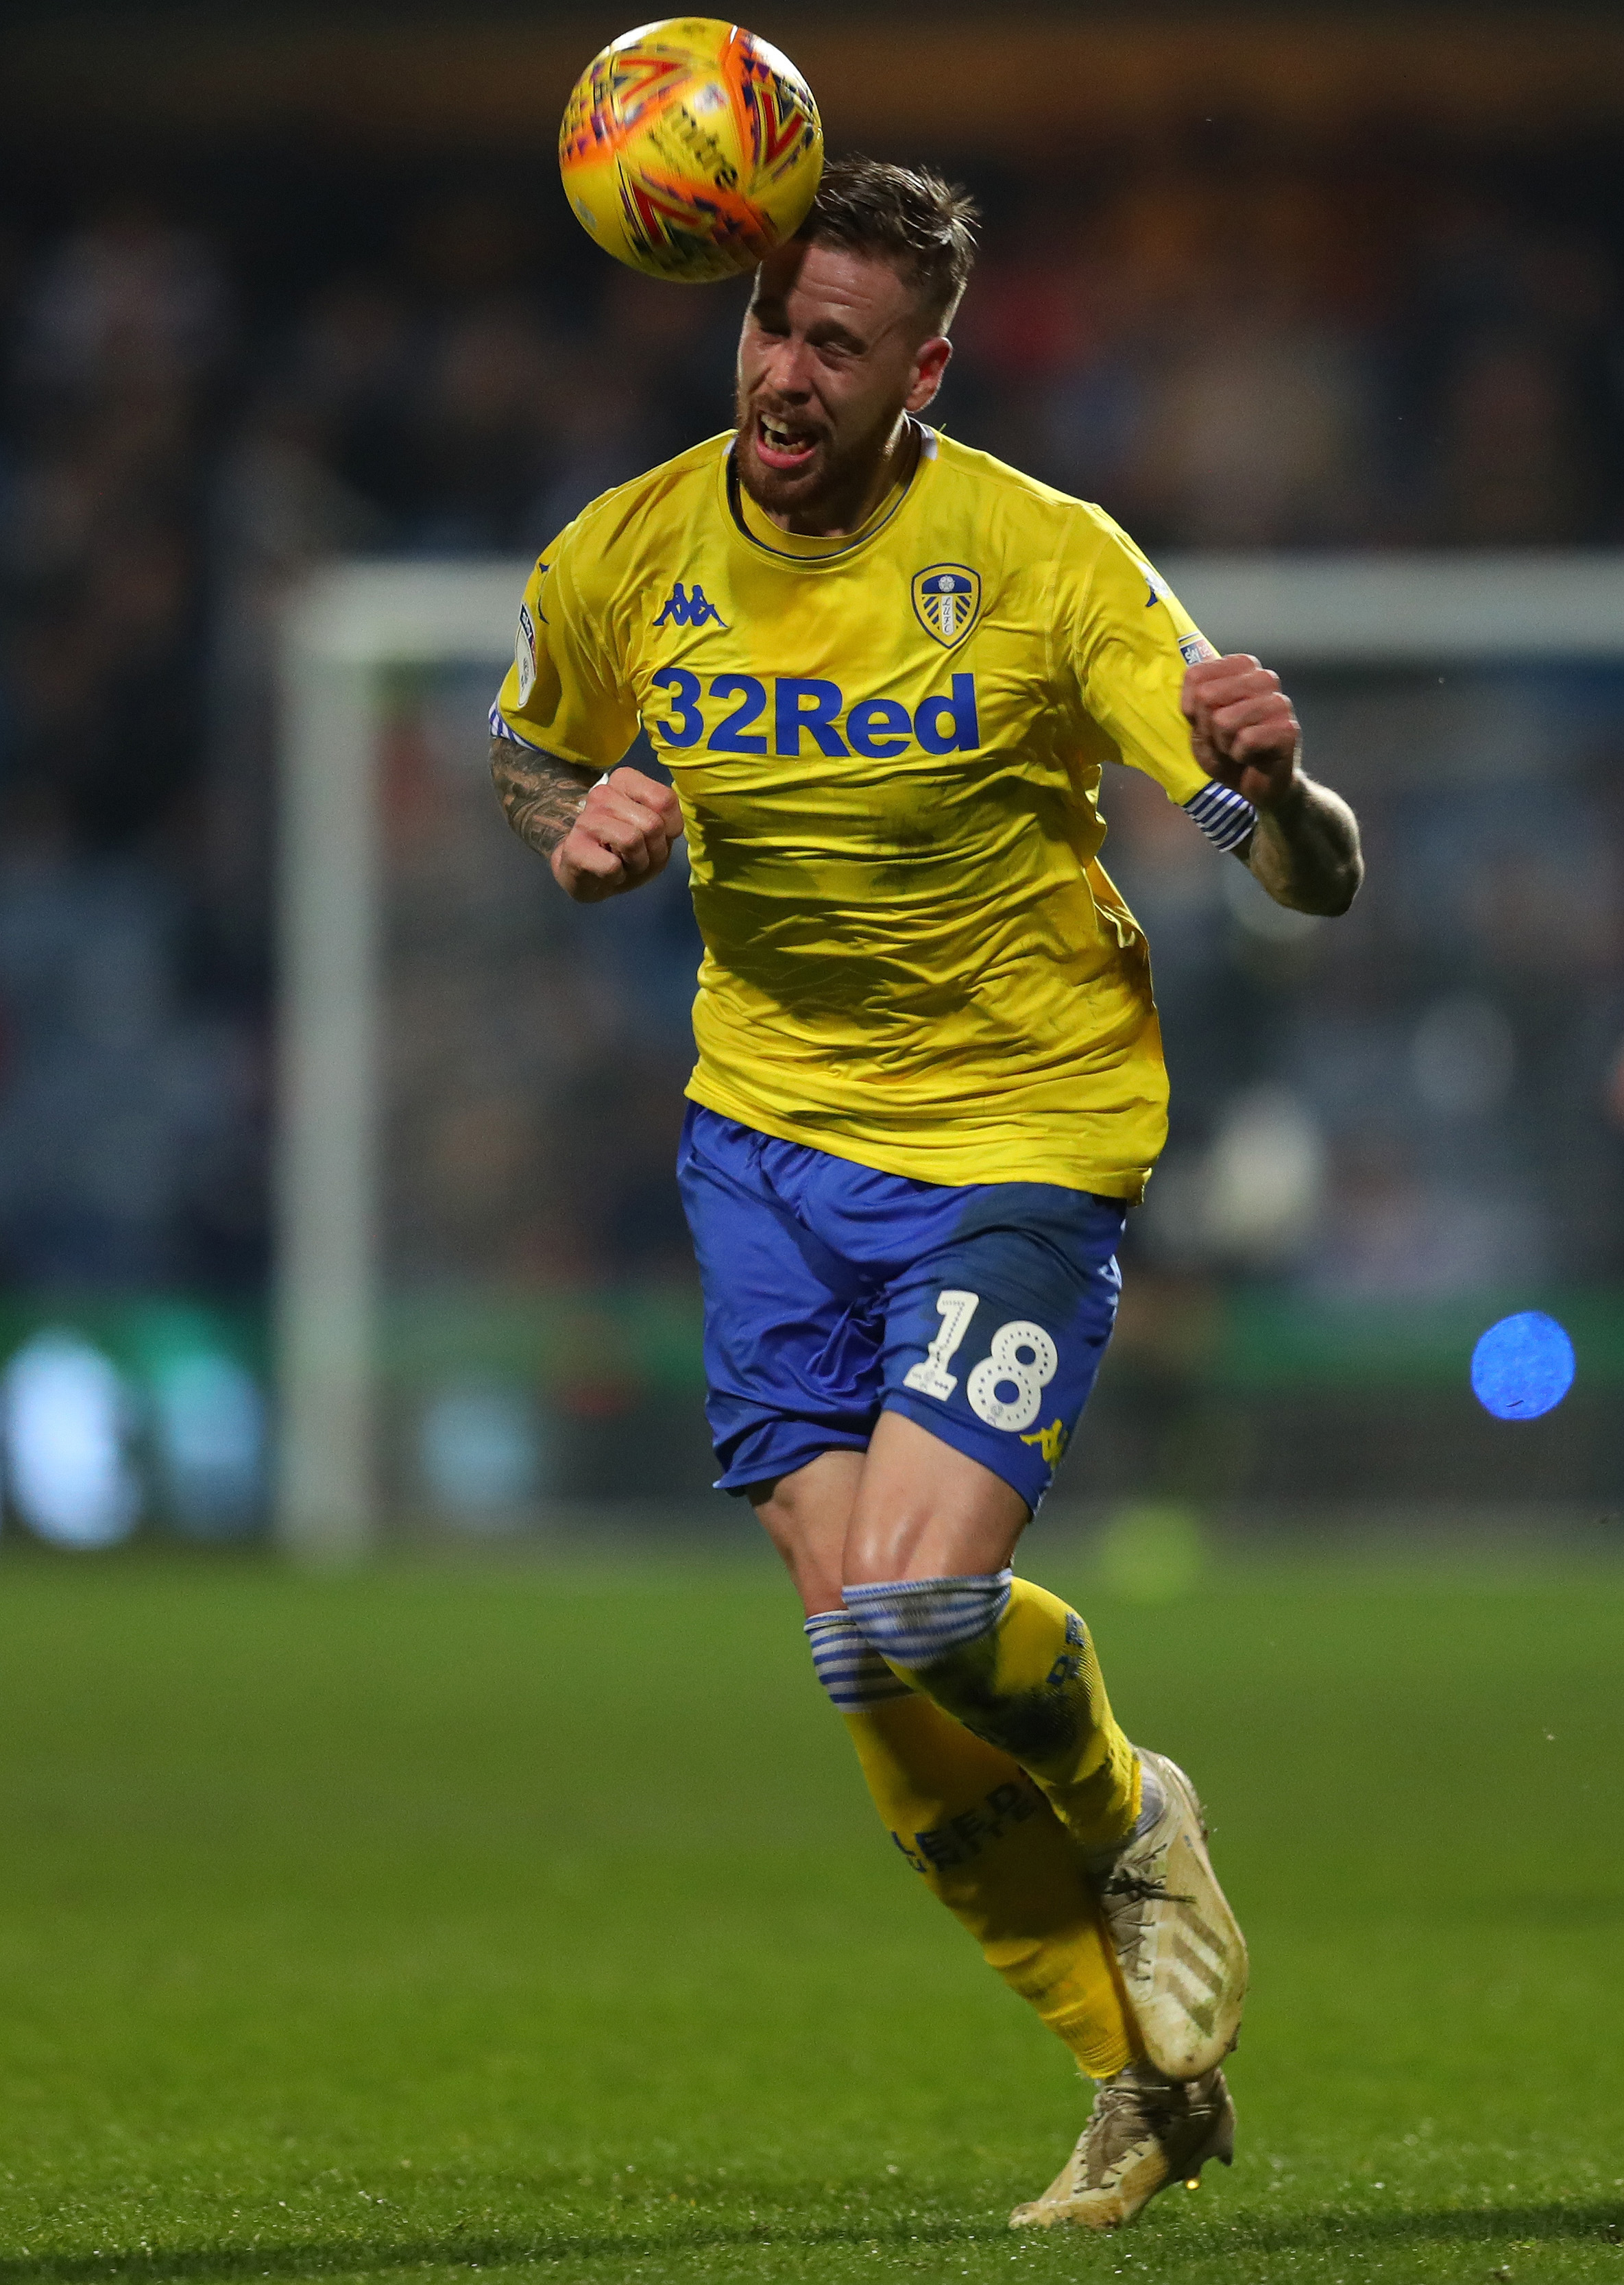 Morning Leeds-in for 17 June: Get your bids in for a match-worn Jansson shirt, for a good cause